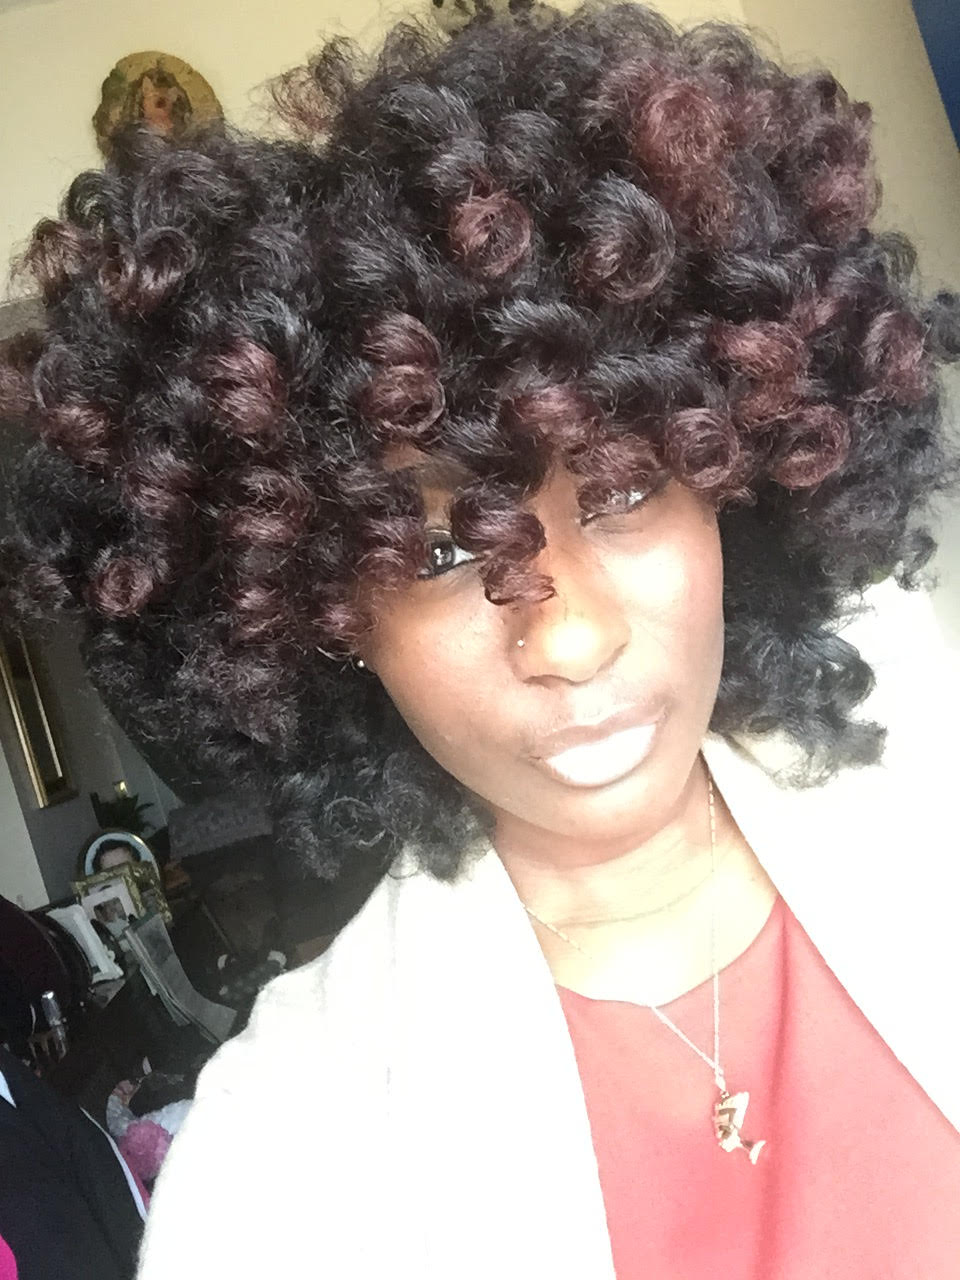 Pictorial: Perm Rod Set on 3c/4a Natural Hair ? I am Team Natural